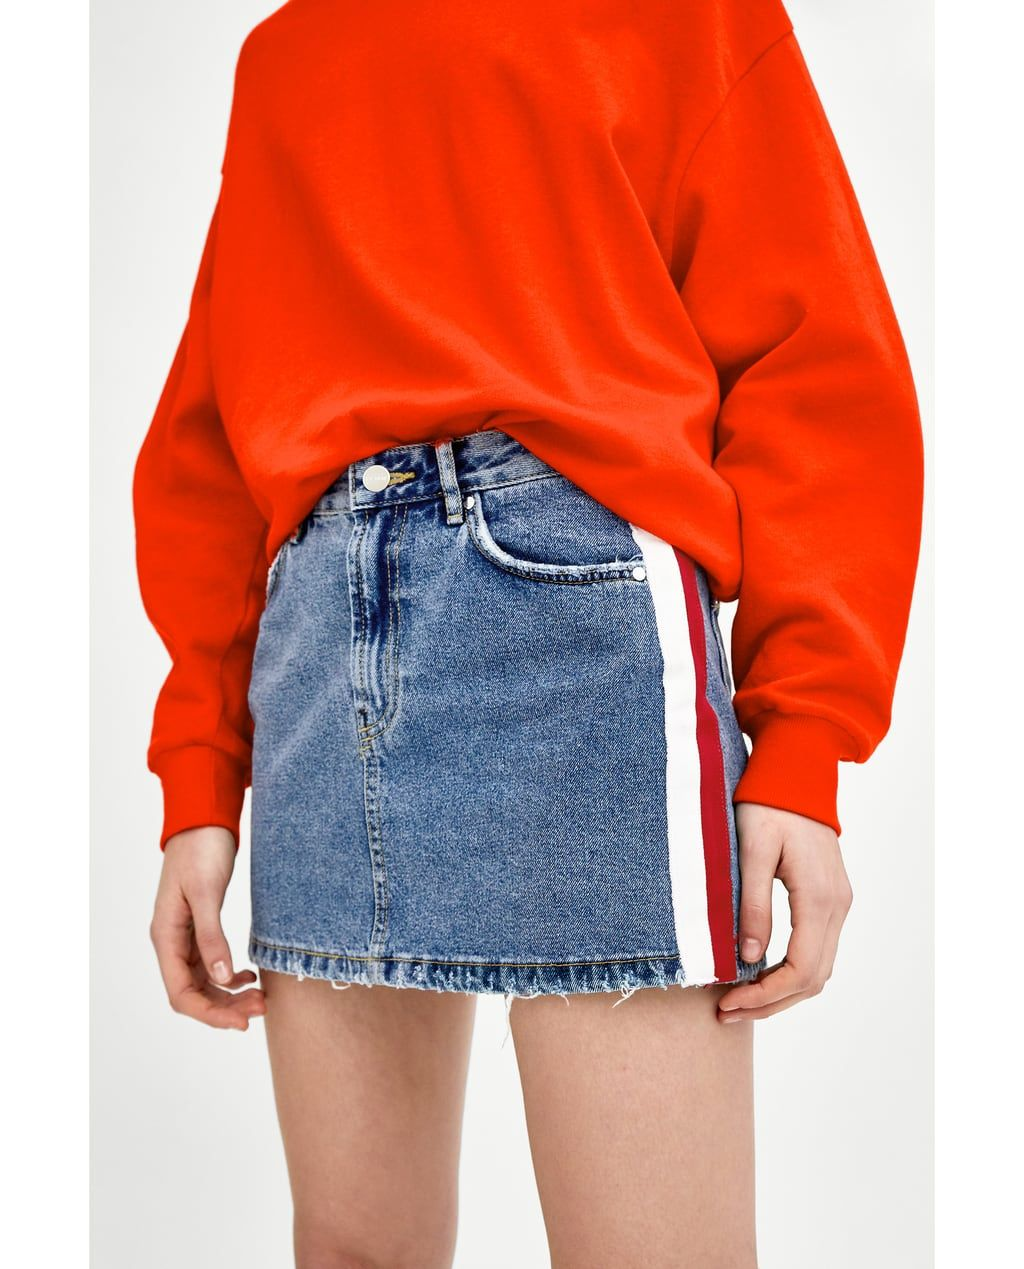 ed353367aa75 Image 2 of MID-RISE DENIM MINI SKIRT WITH SIDE STRIPES from Zara ...